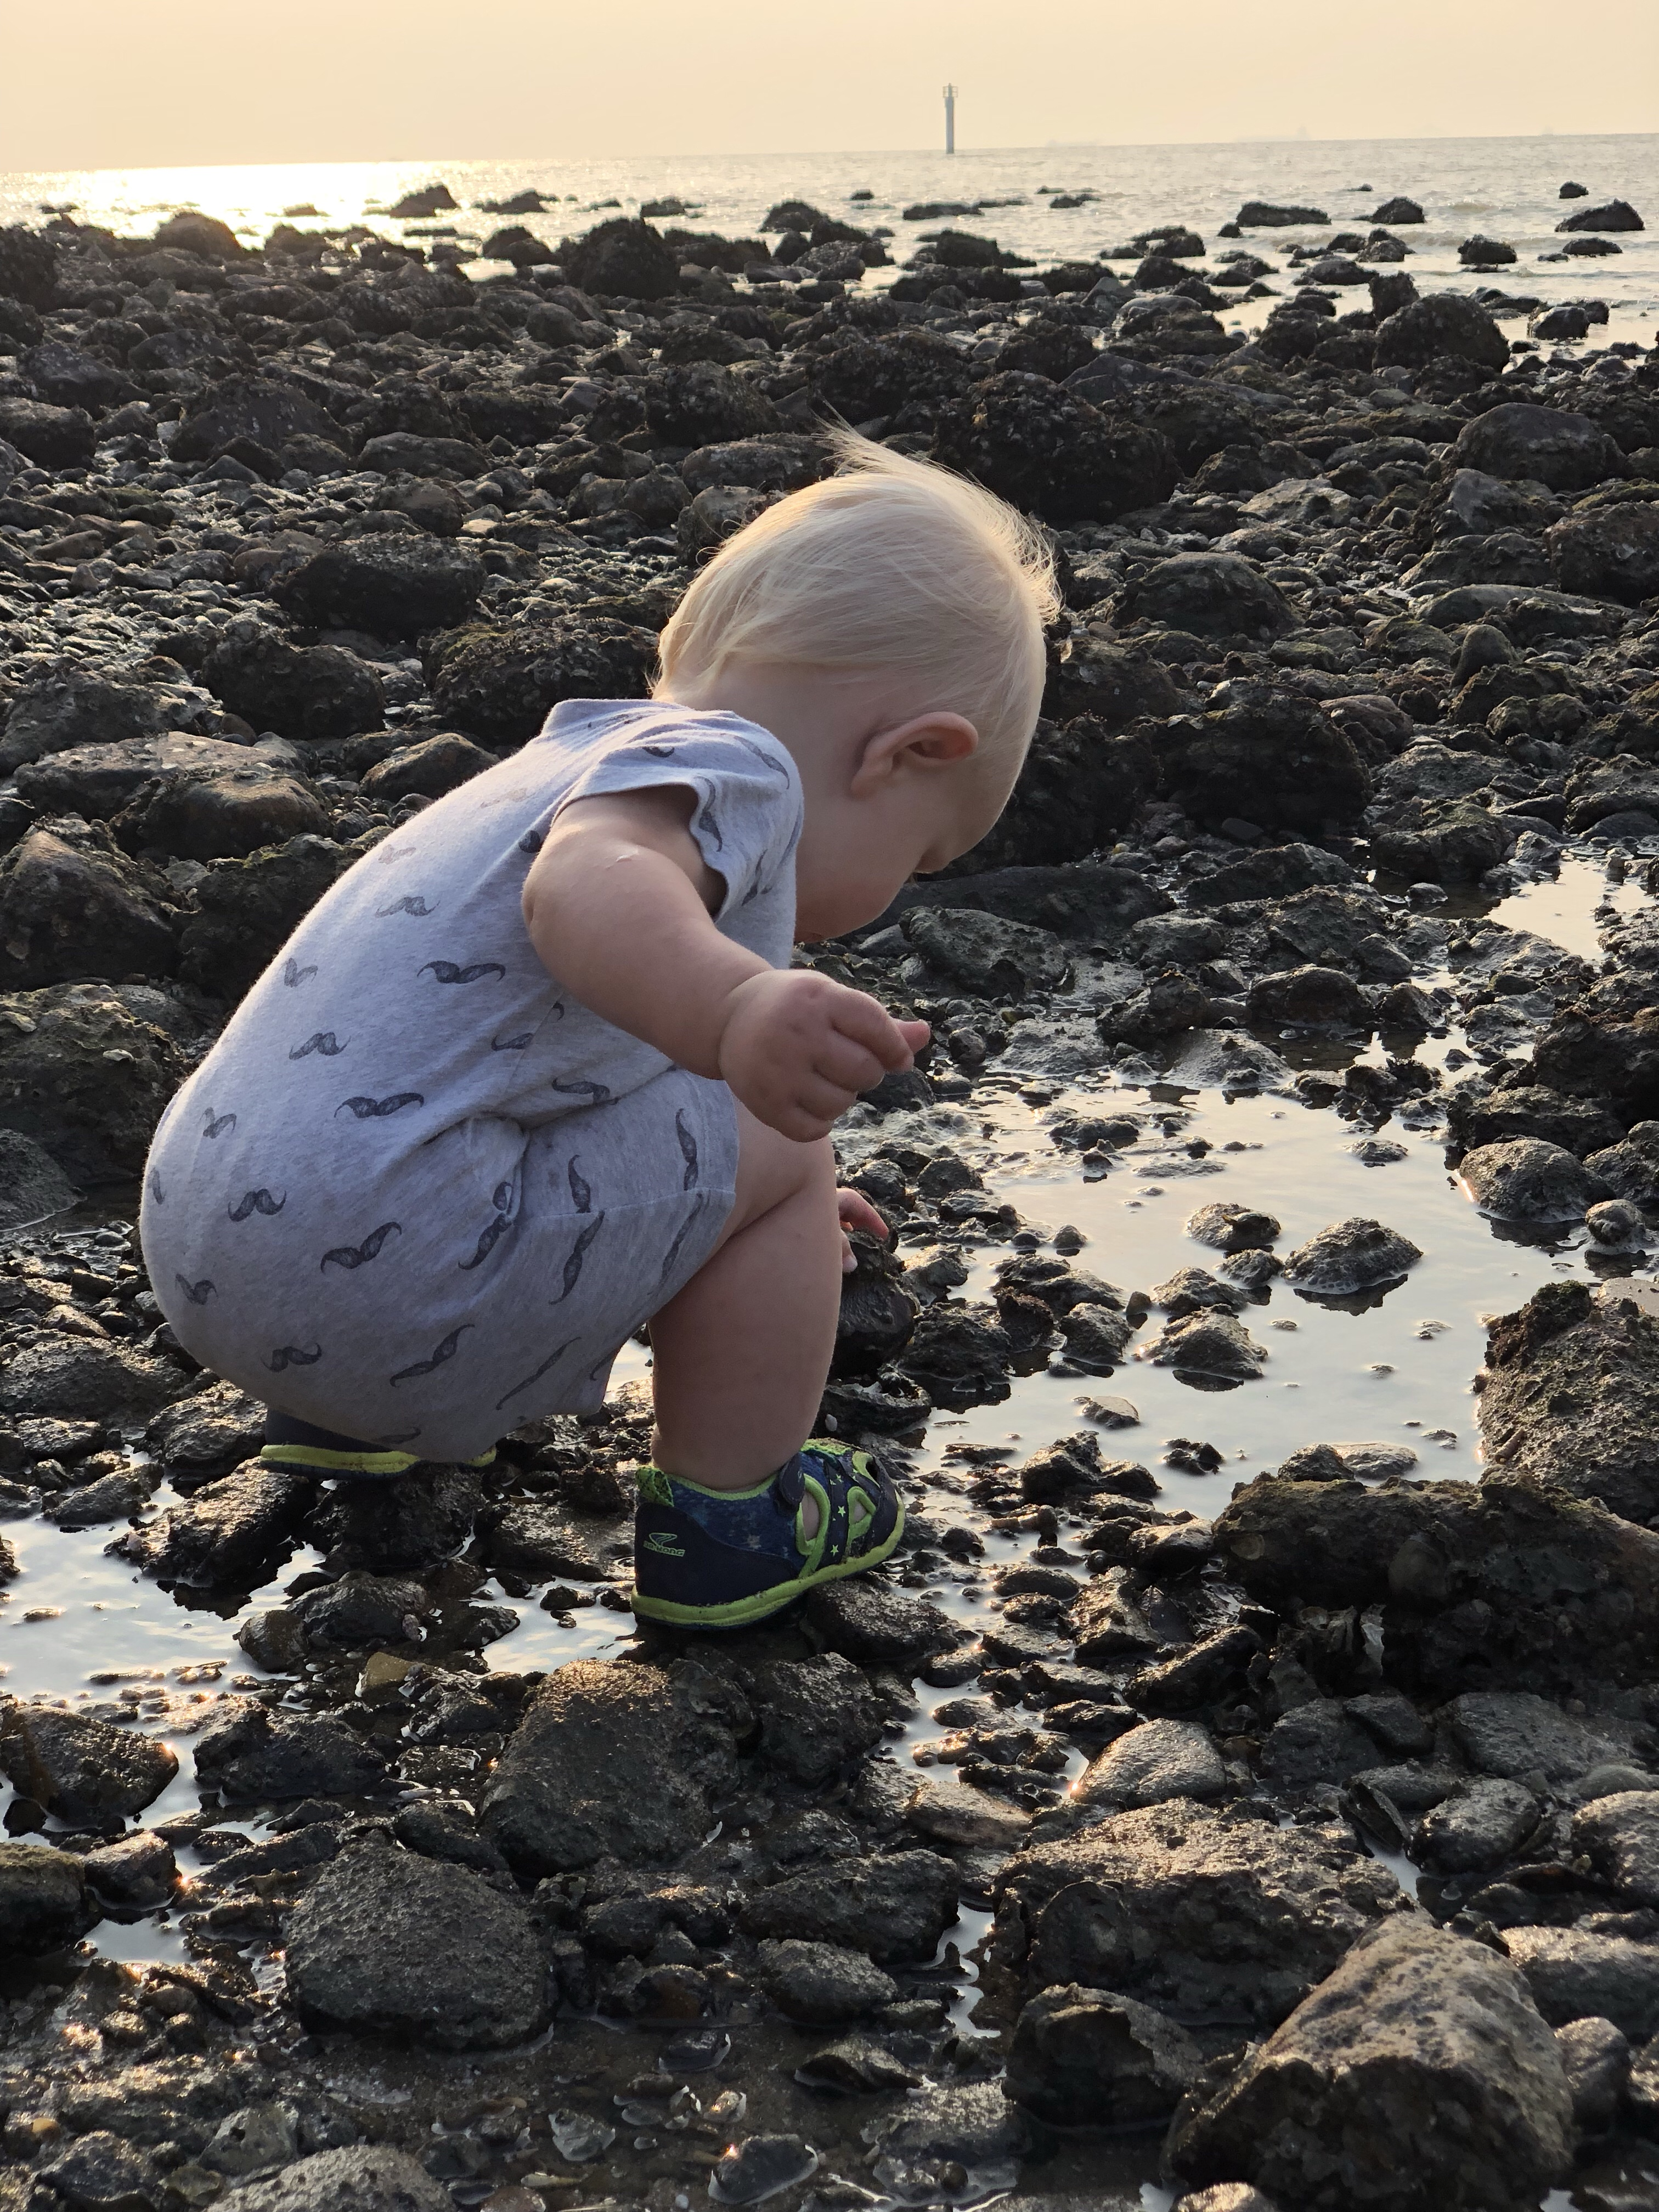 questions to ask yourself when studying tide pools | tide pools | Hong Kong | children science | teaching resources | Homeschooling | Unschooling | sealife science lessons | This Indulgent Life